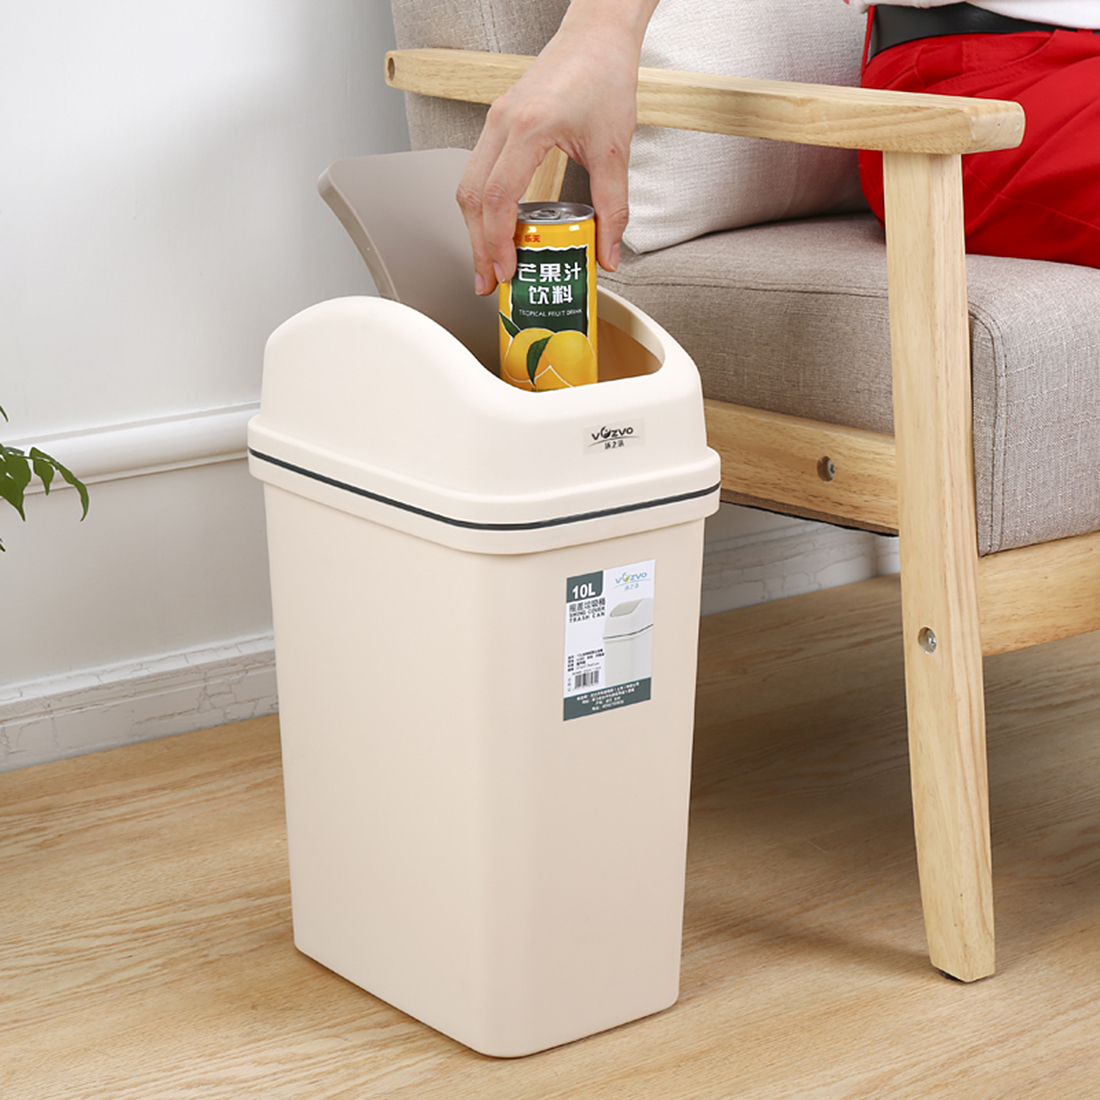 iTECHOR Plastic Trash Can 6L Swivelling Cover Practical Trash Cans Kitchen Living Room Organizer Flip Top kitchen Garbage Bin